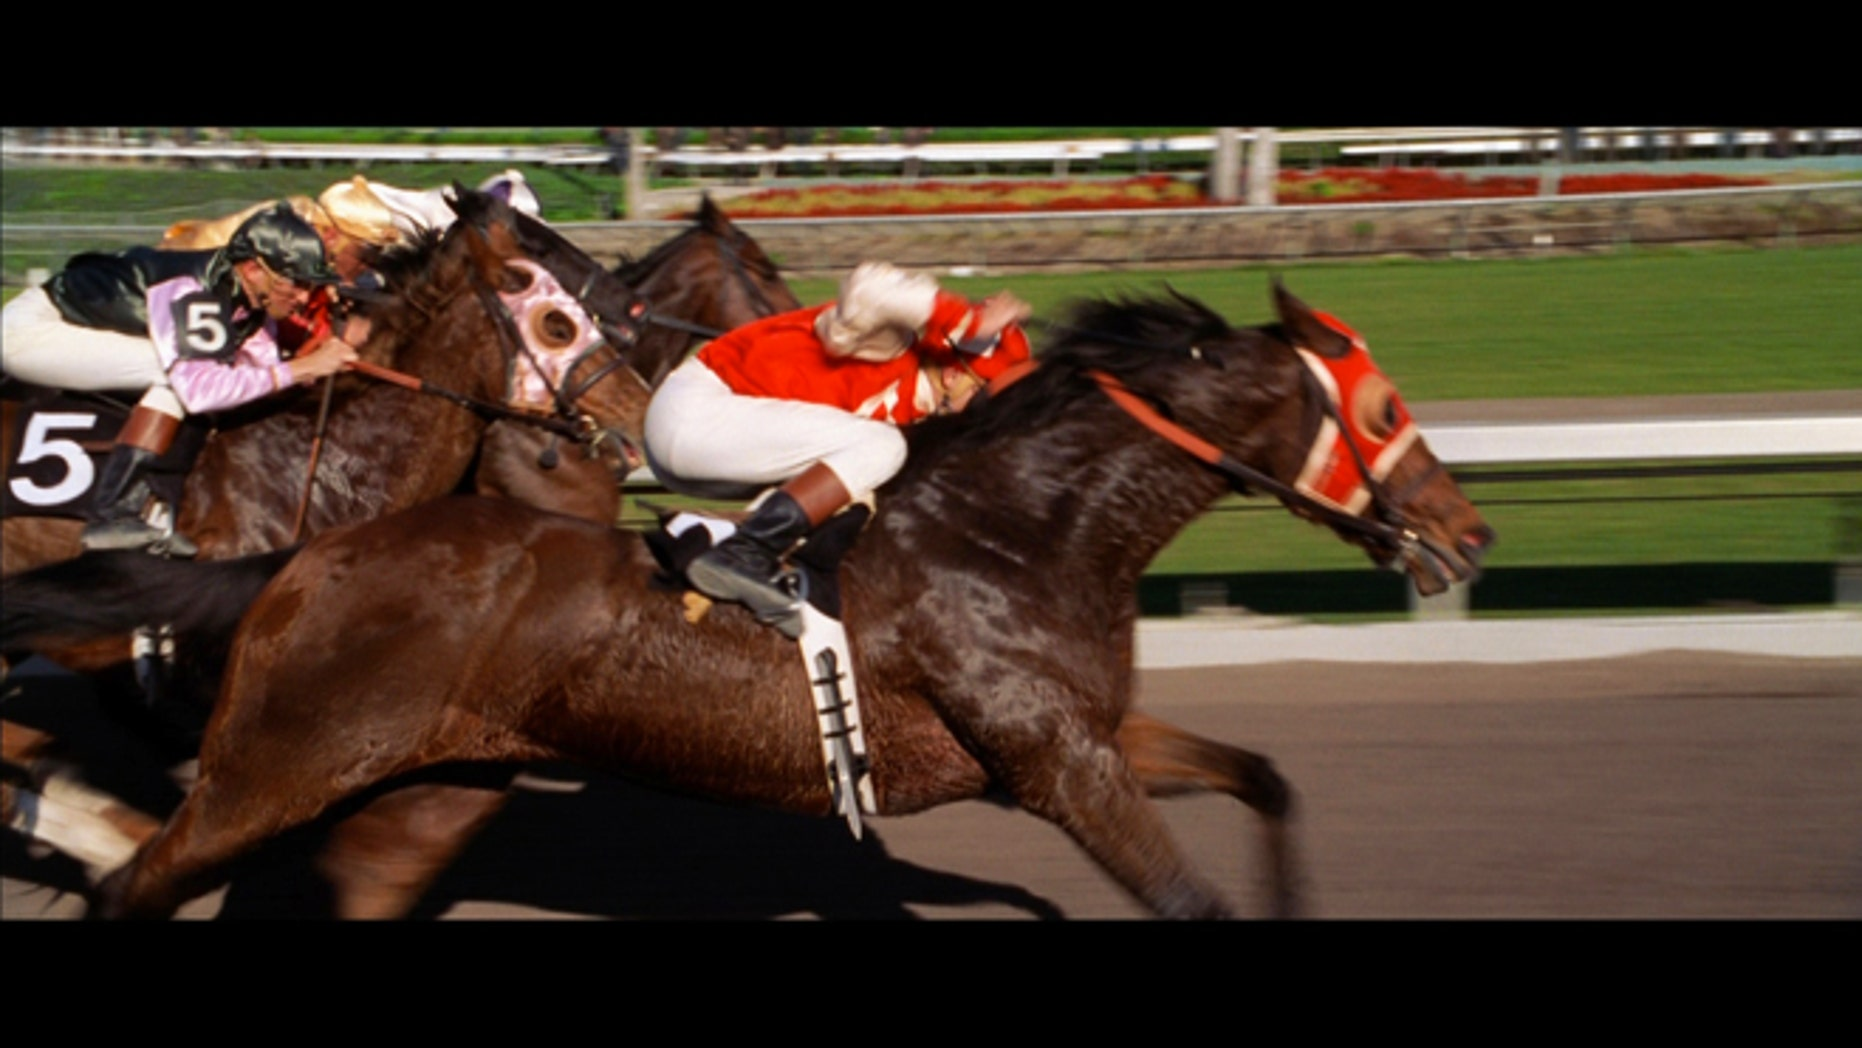 """A frame from the film """"Seabiscuit,"""" which tells the tale of the legendary racehorse."""